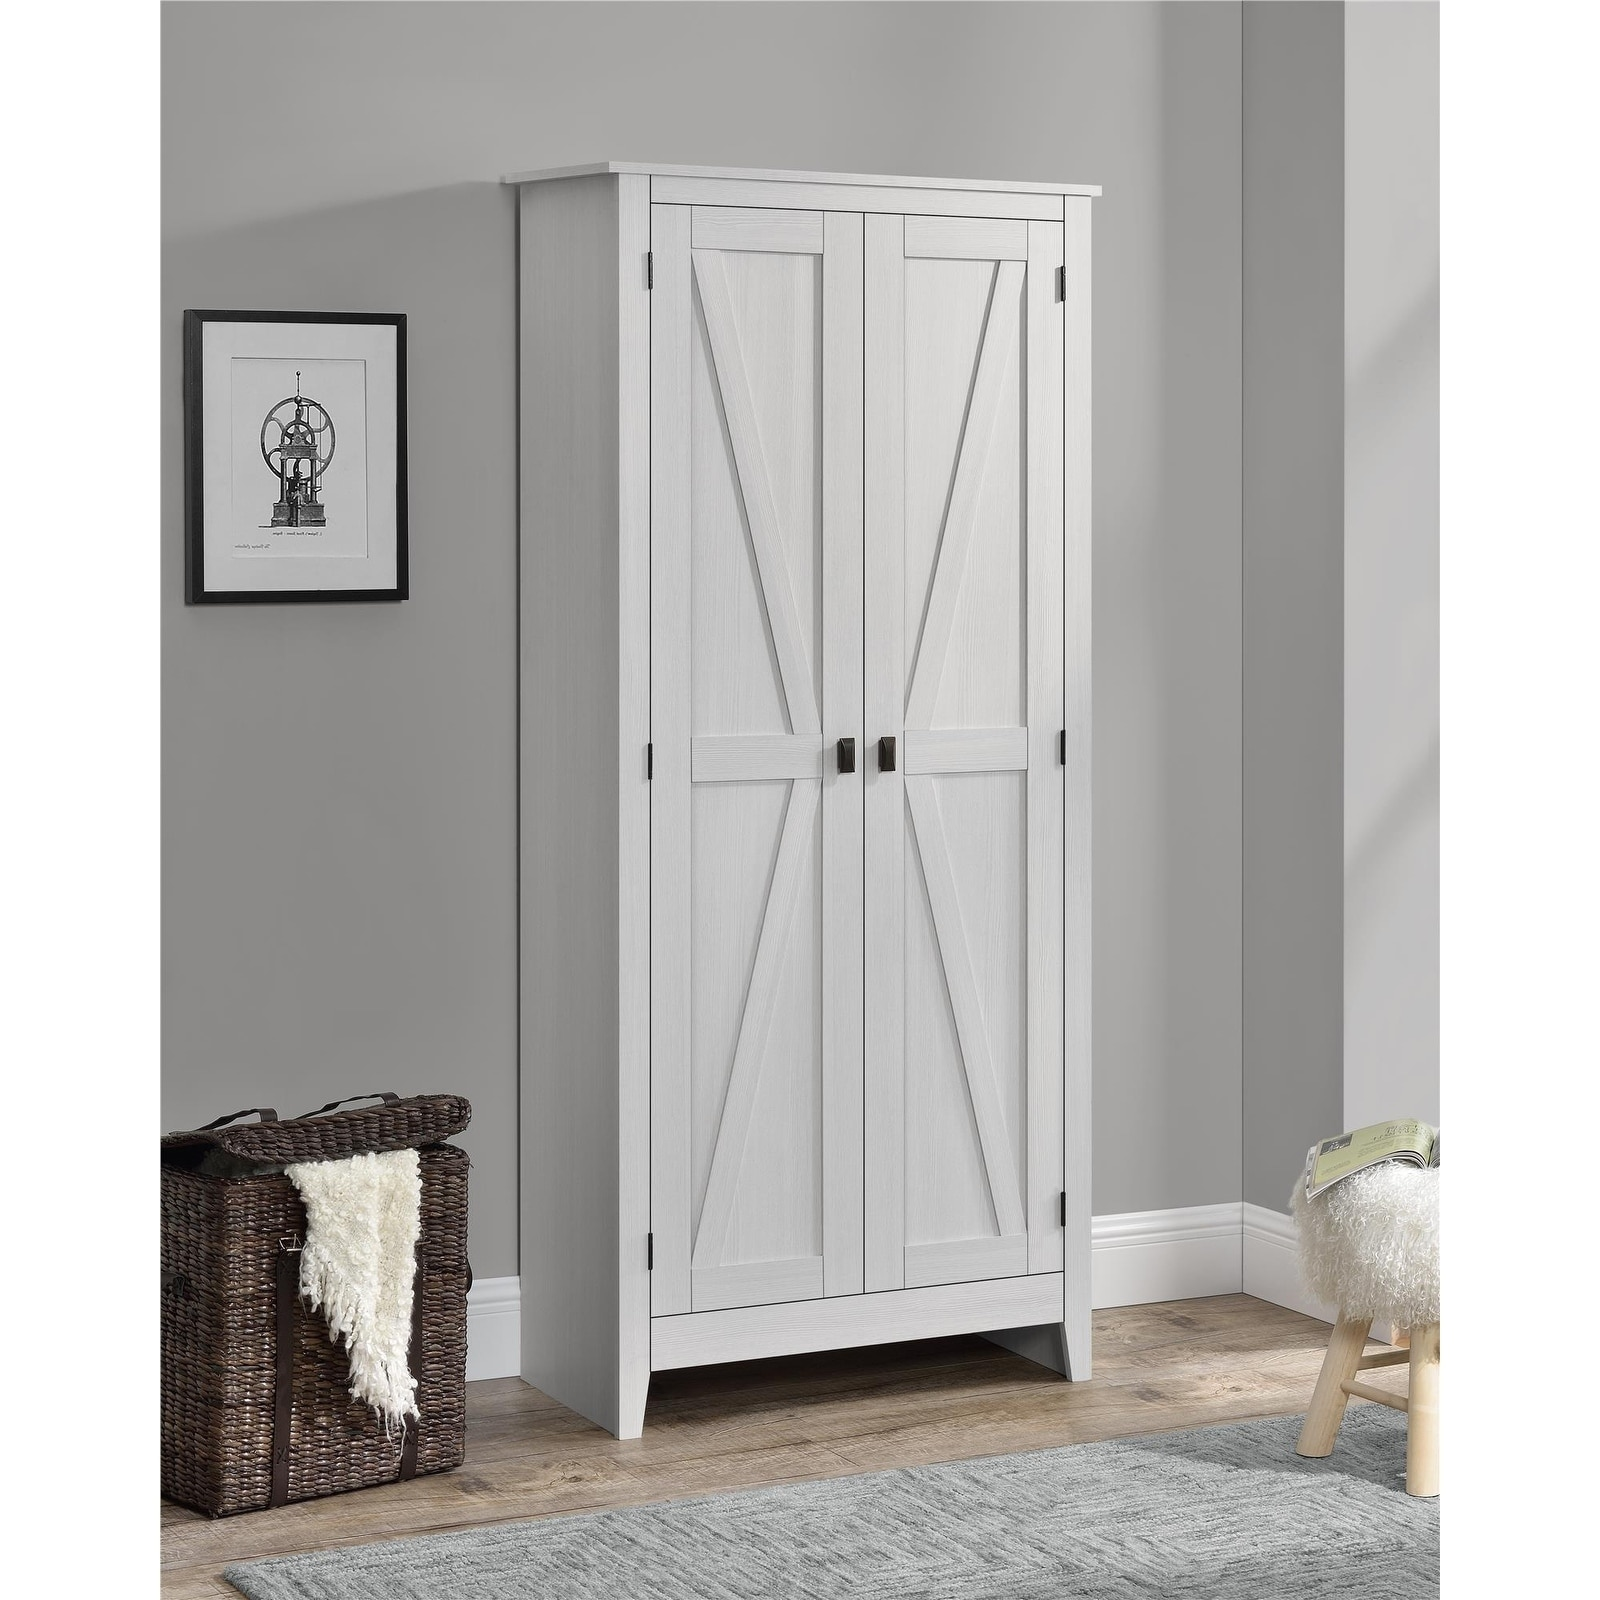 Shop The Gray Barn Latigo Brown 31 5 Inch Storage Cabinet Free